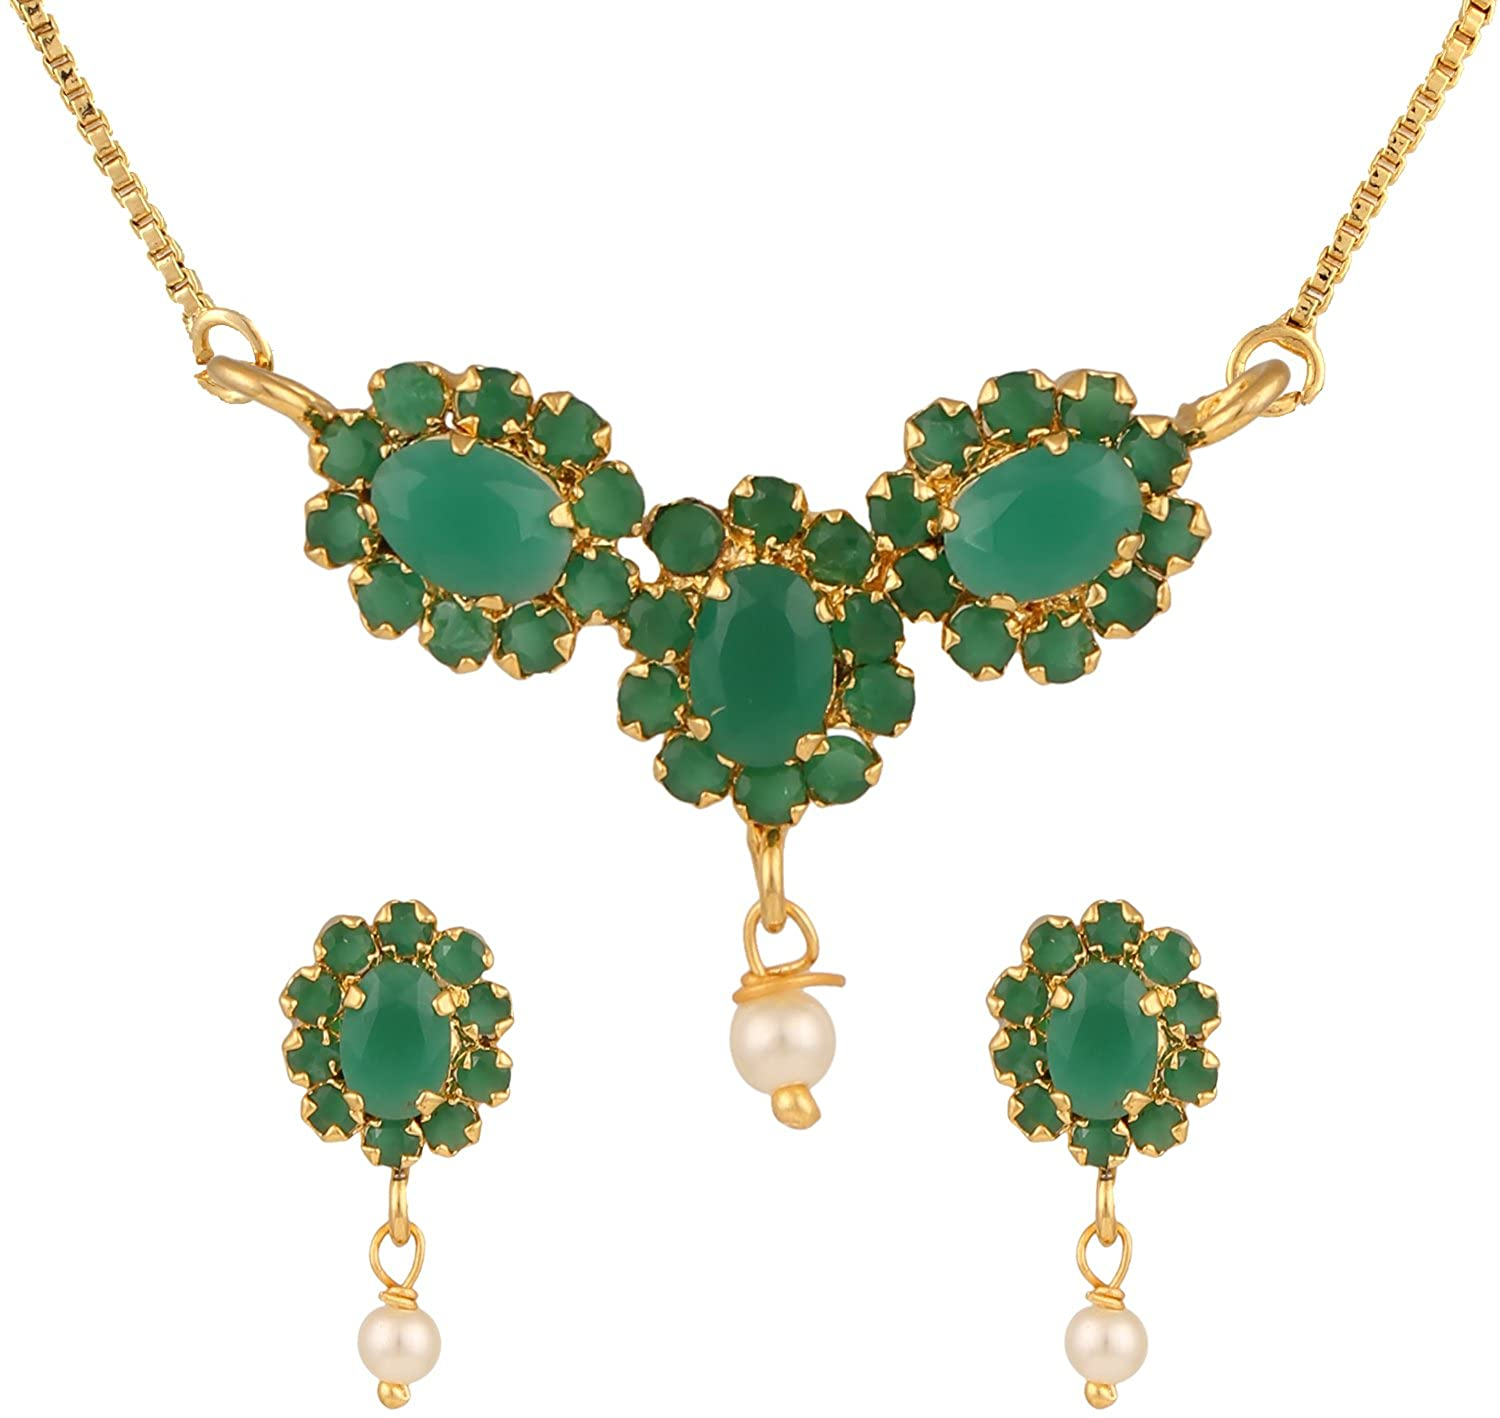 Efulgenz Gold Tone Indian Bollywood Ethnic American Diamond Traditional Pendant Necklace with Chain and Earrings Jewelry for Girls/Women